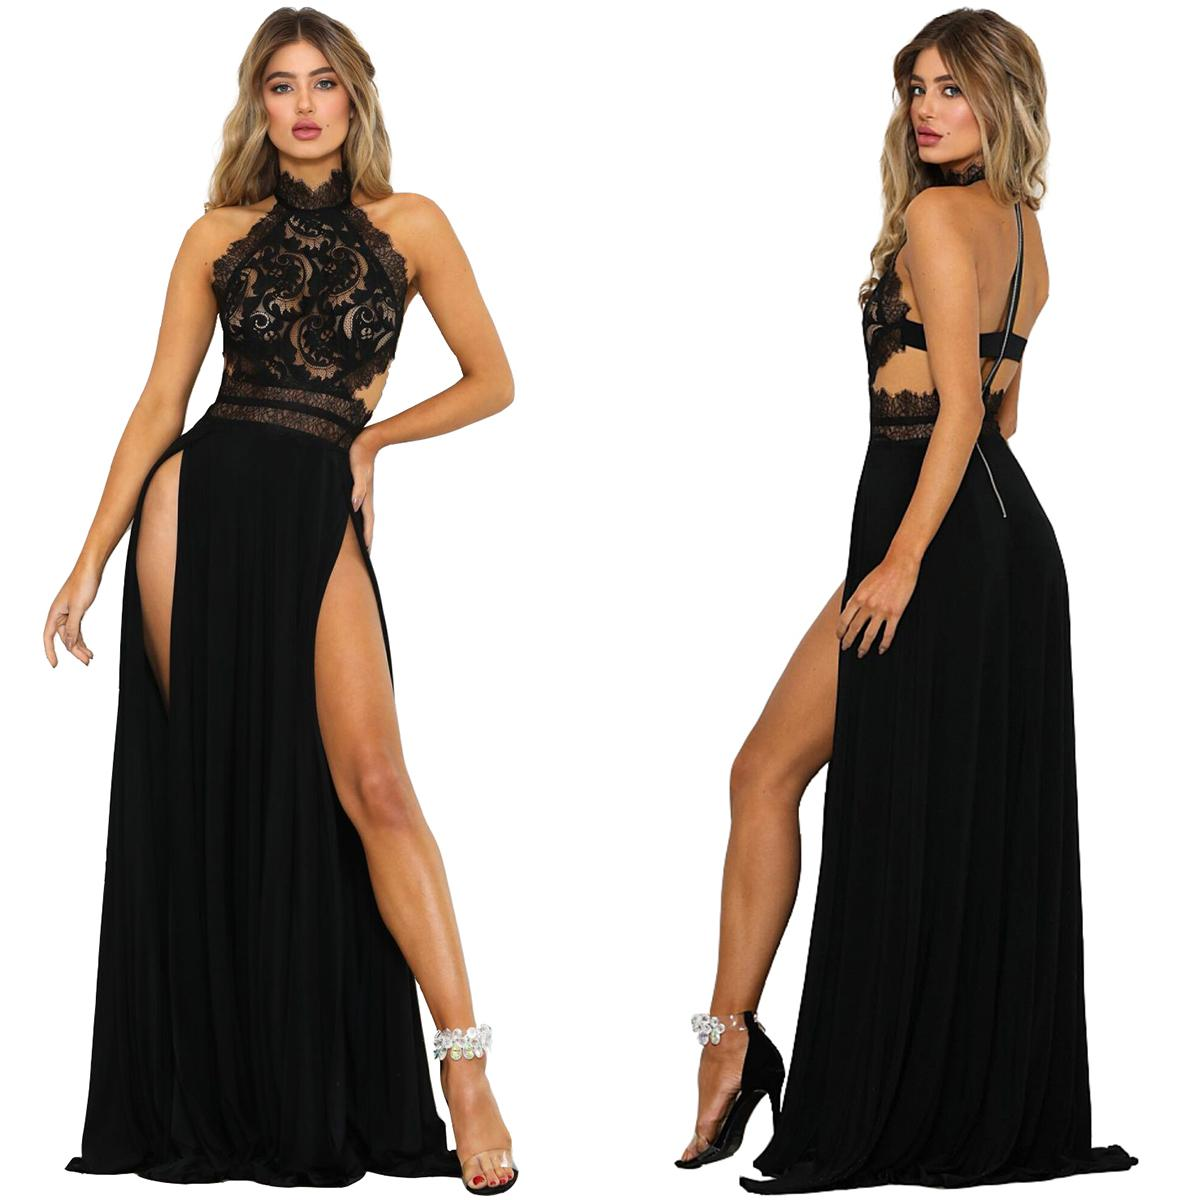 HOT Lace Sexy Halter Stand Neck Floor-Length Dress S-XL Size Women Fashion Split Dress New Summer HIGH QUALITY